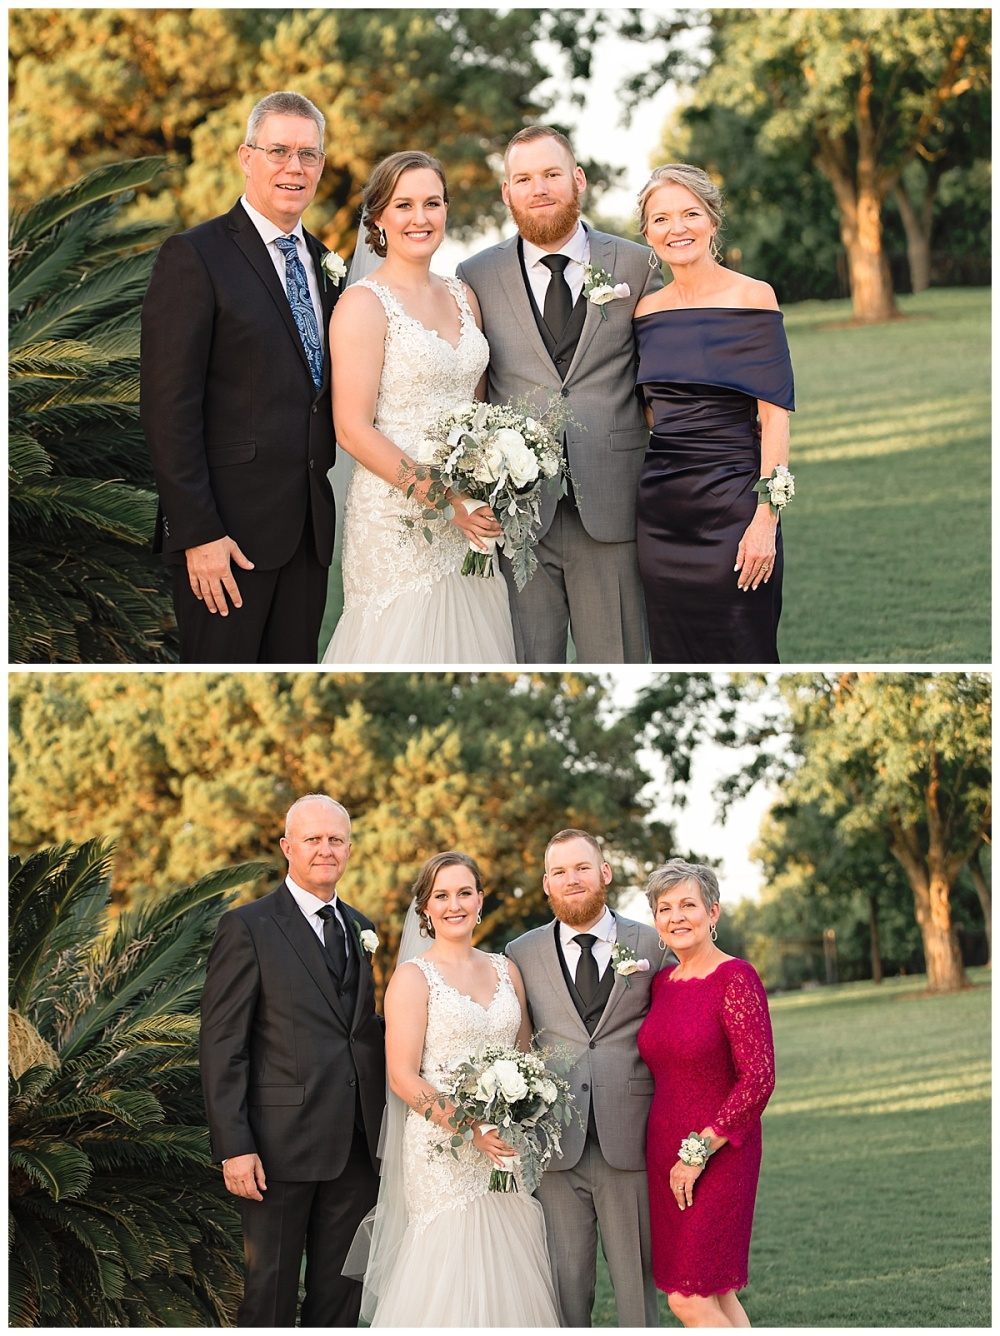 Carly-Barton-Photography-Wedding-Photos-Granberry-Hills-Event-Facility-Ryan-Chelsea-San-Antonio-Texas_0045